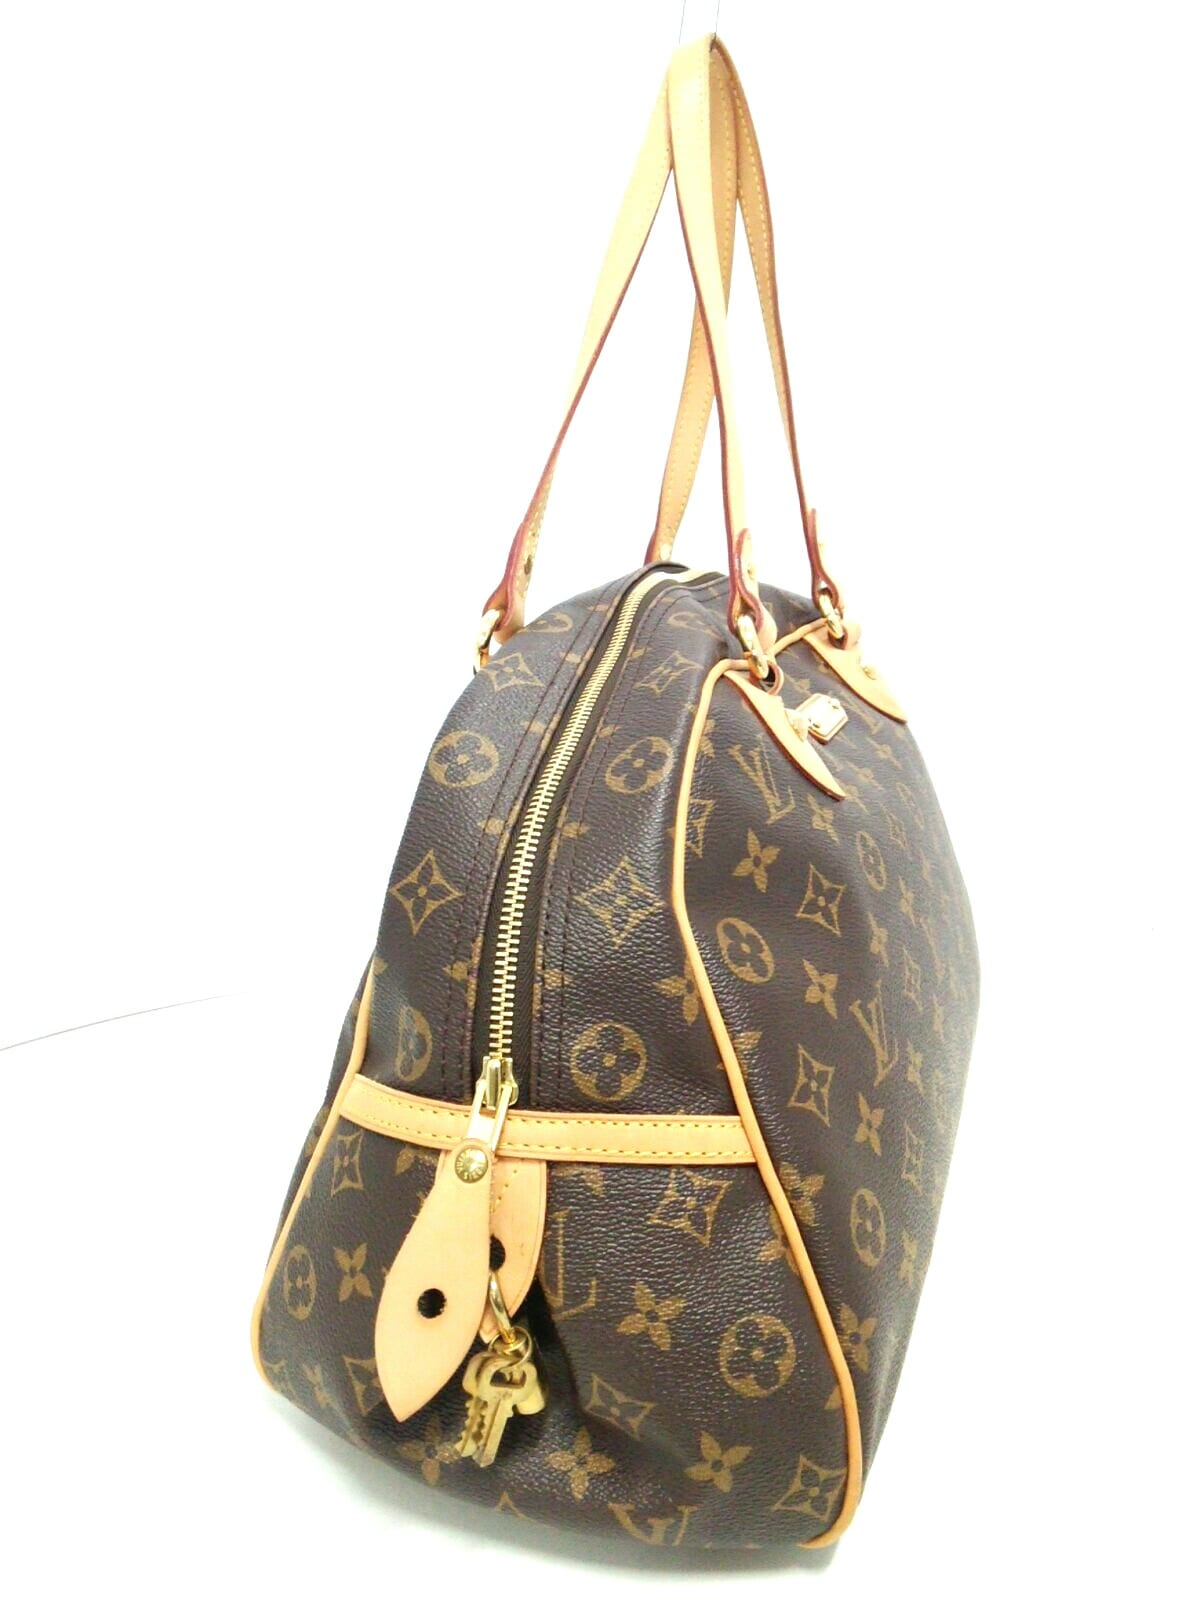 LOUIS VUITTON(ルイヴィトン)のモントルグイユPM